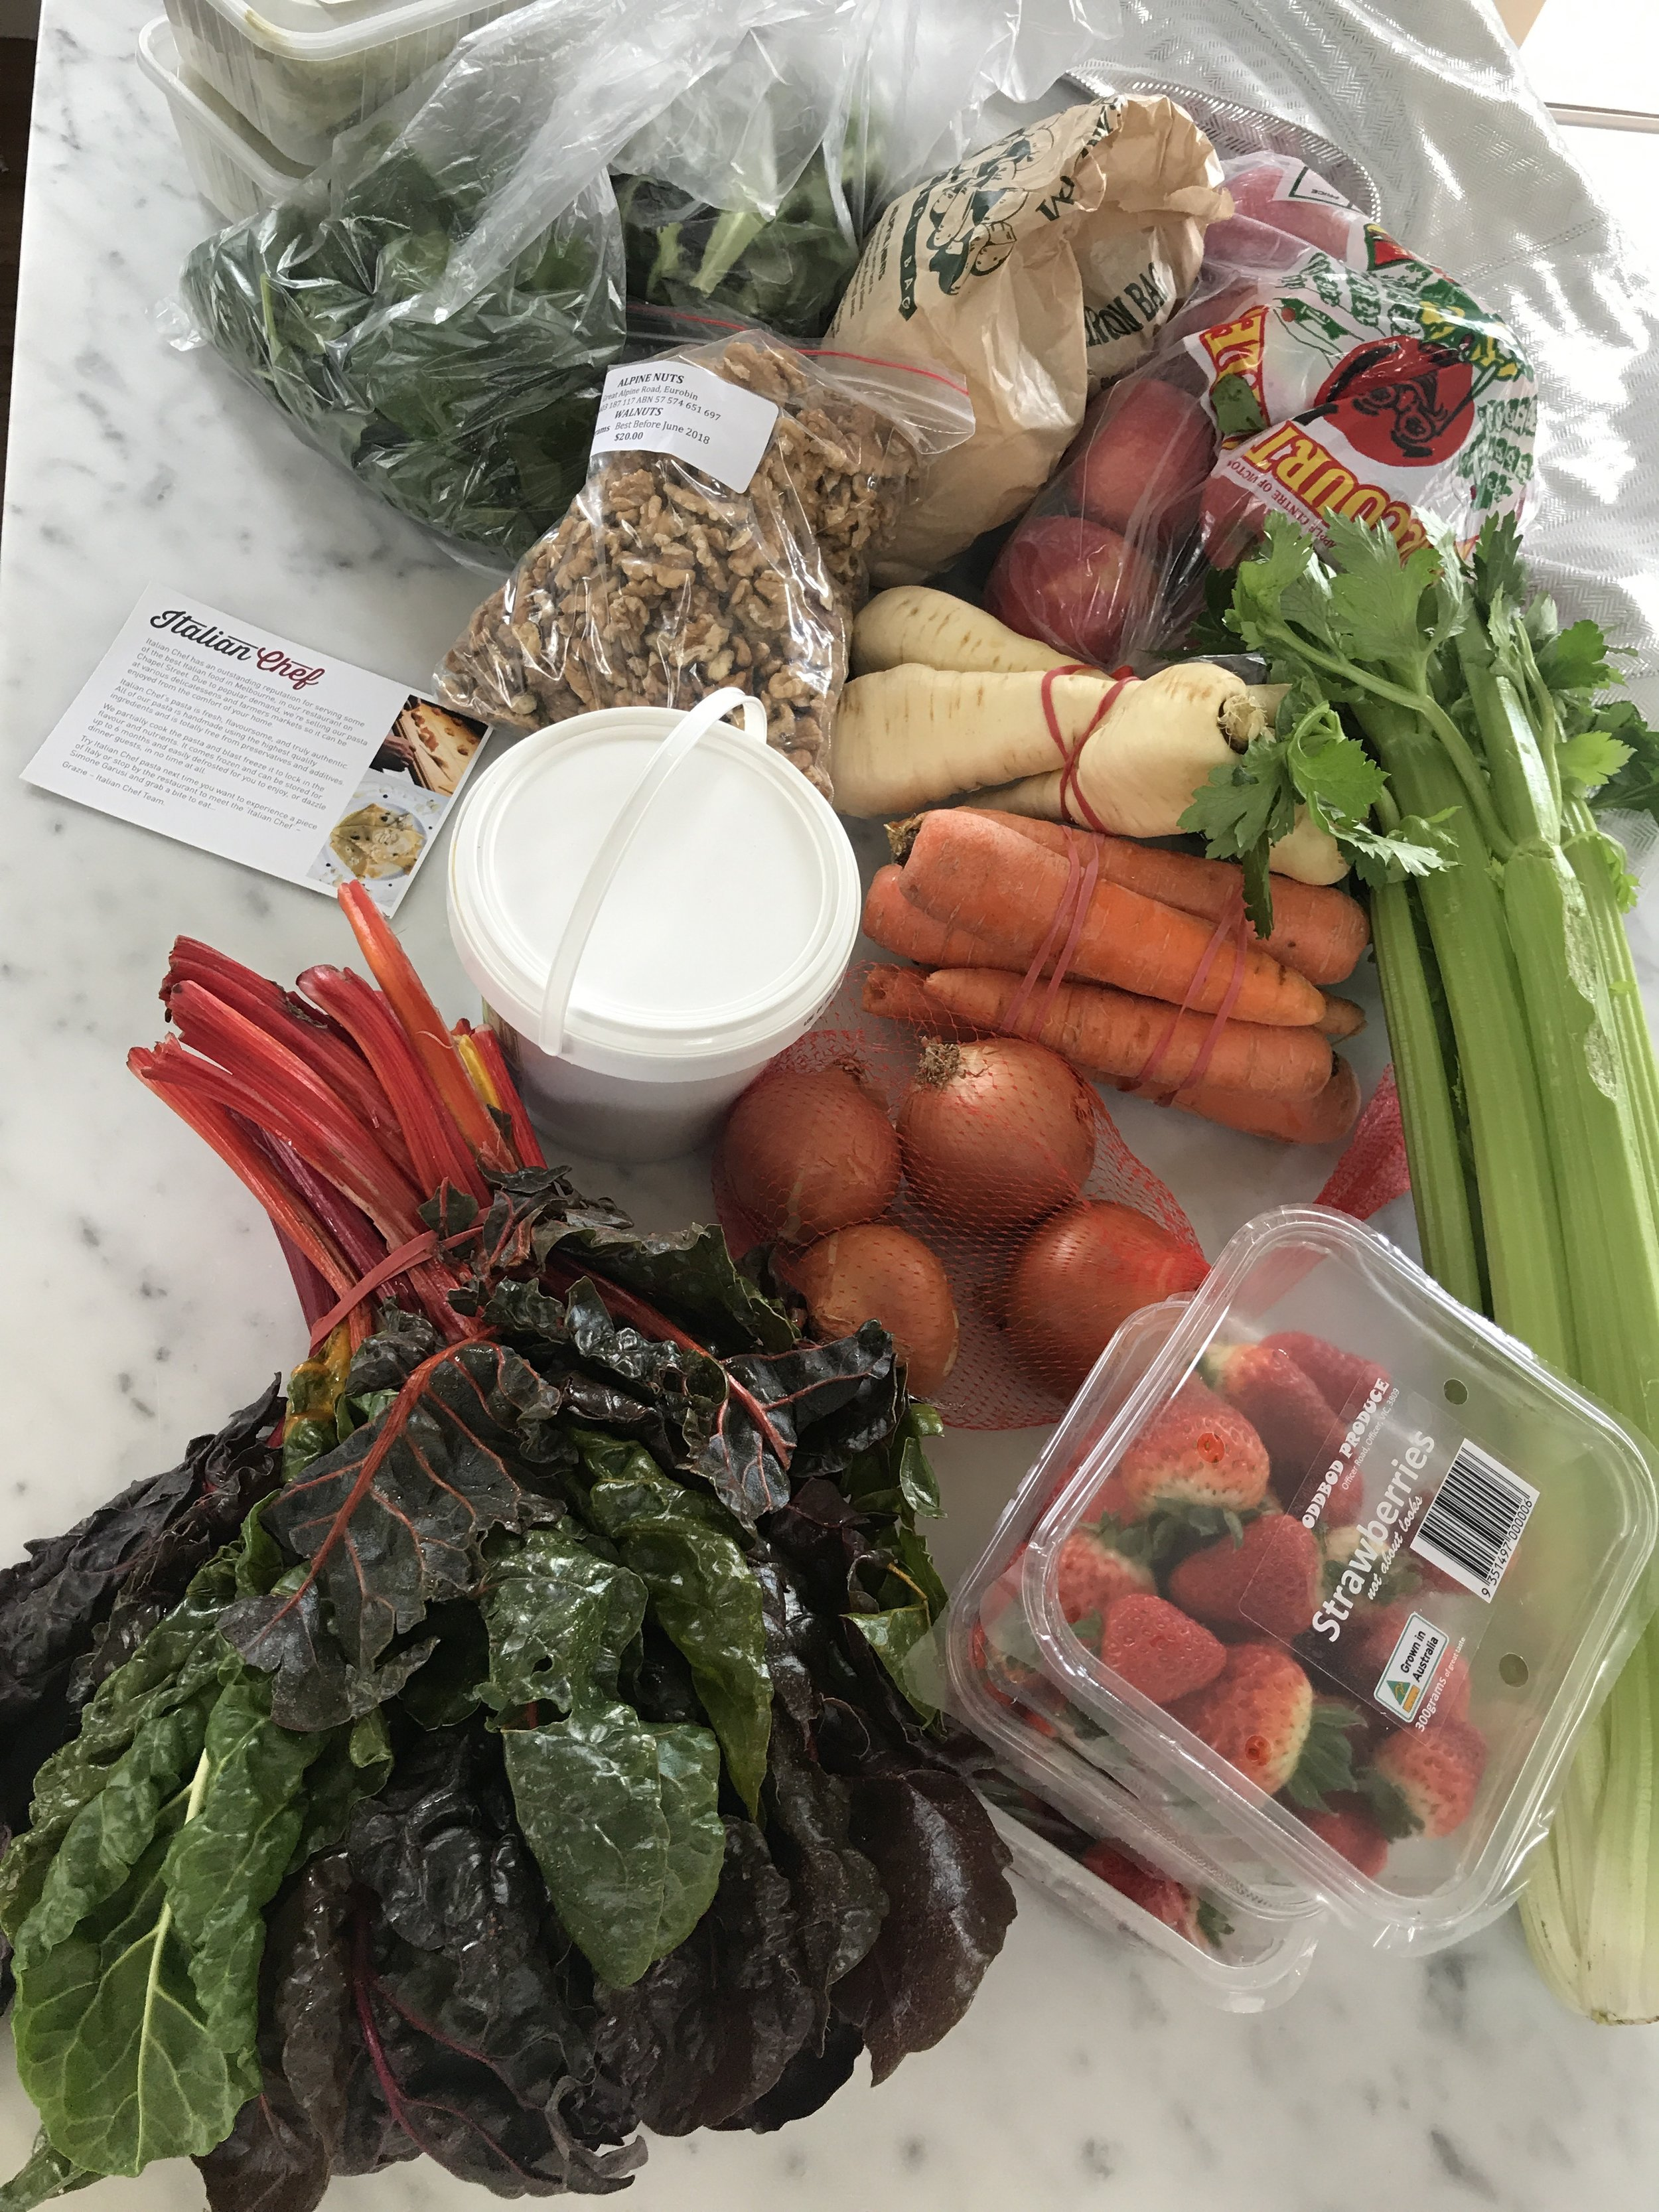 The produce purchased on this visit. Silverbeet, strawberries, onions, celery, organic yogurt, carrots, parsnip, walnuts, apples, mushrooms, spinach, lettuce, and home made ravioli pasta, which is in the freezer,and a recipe card from my gorgeous Italian pasta man.